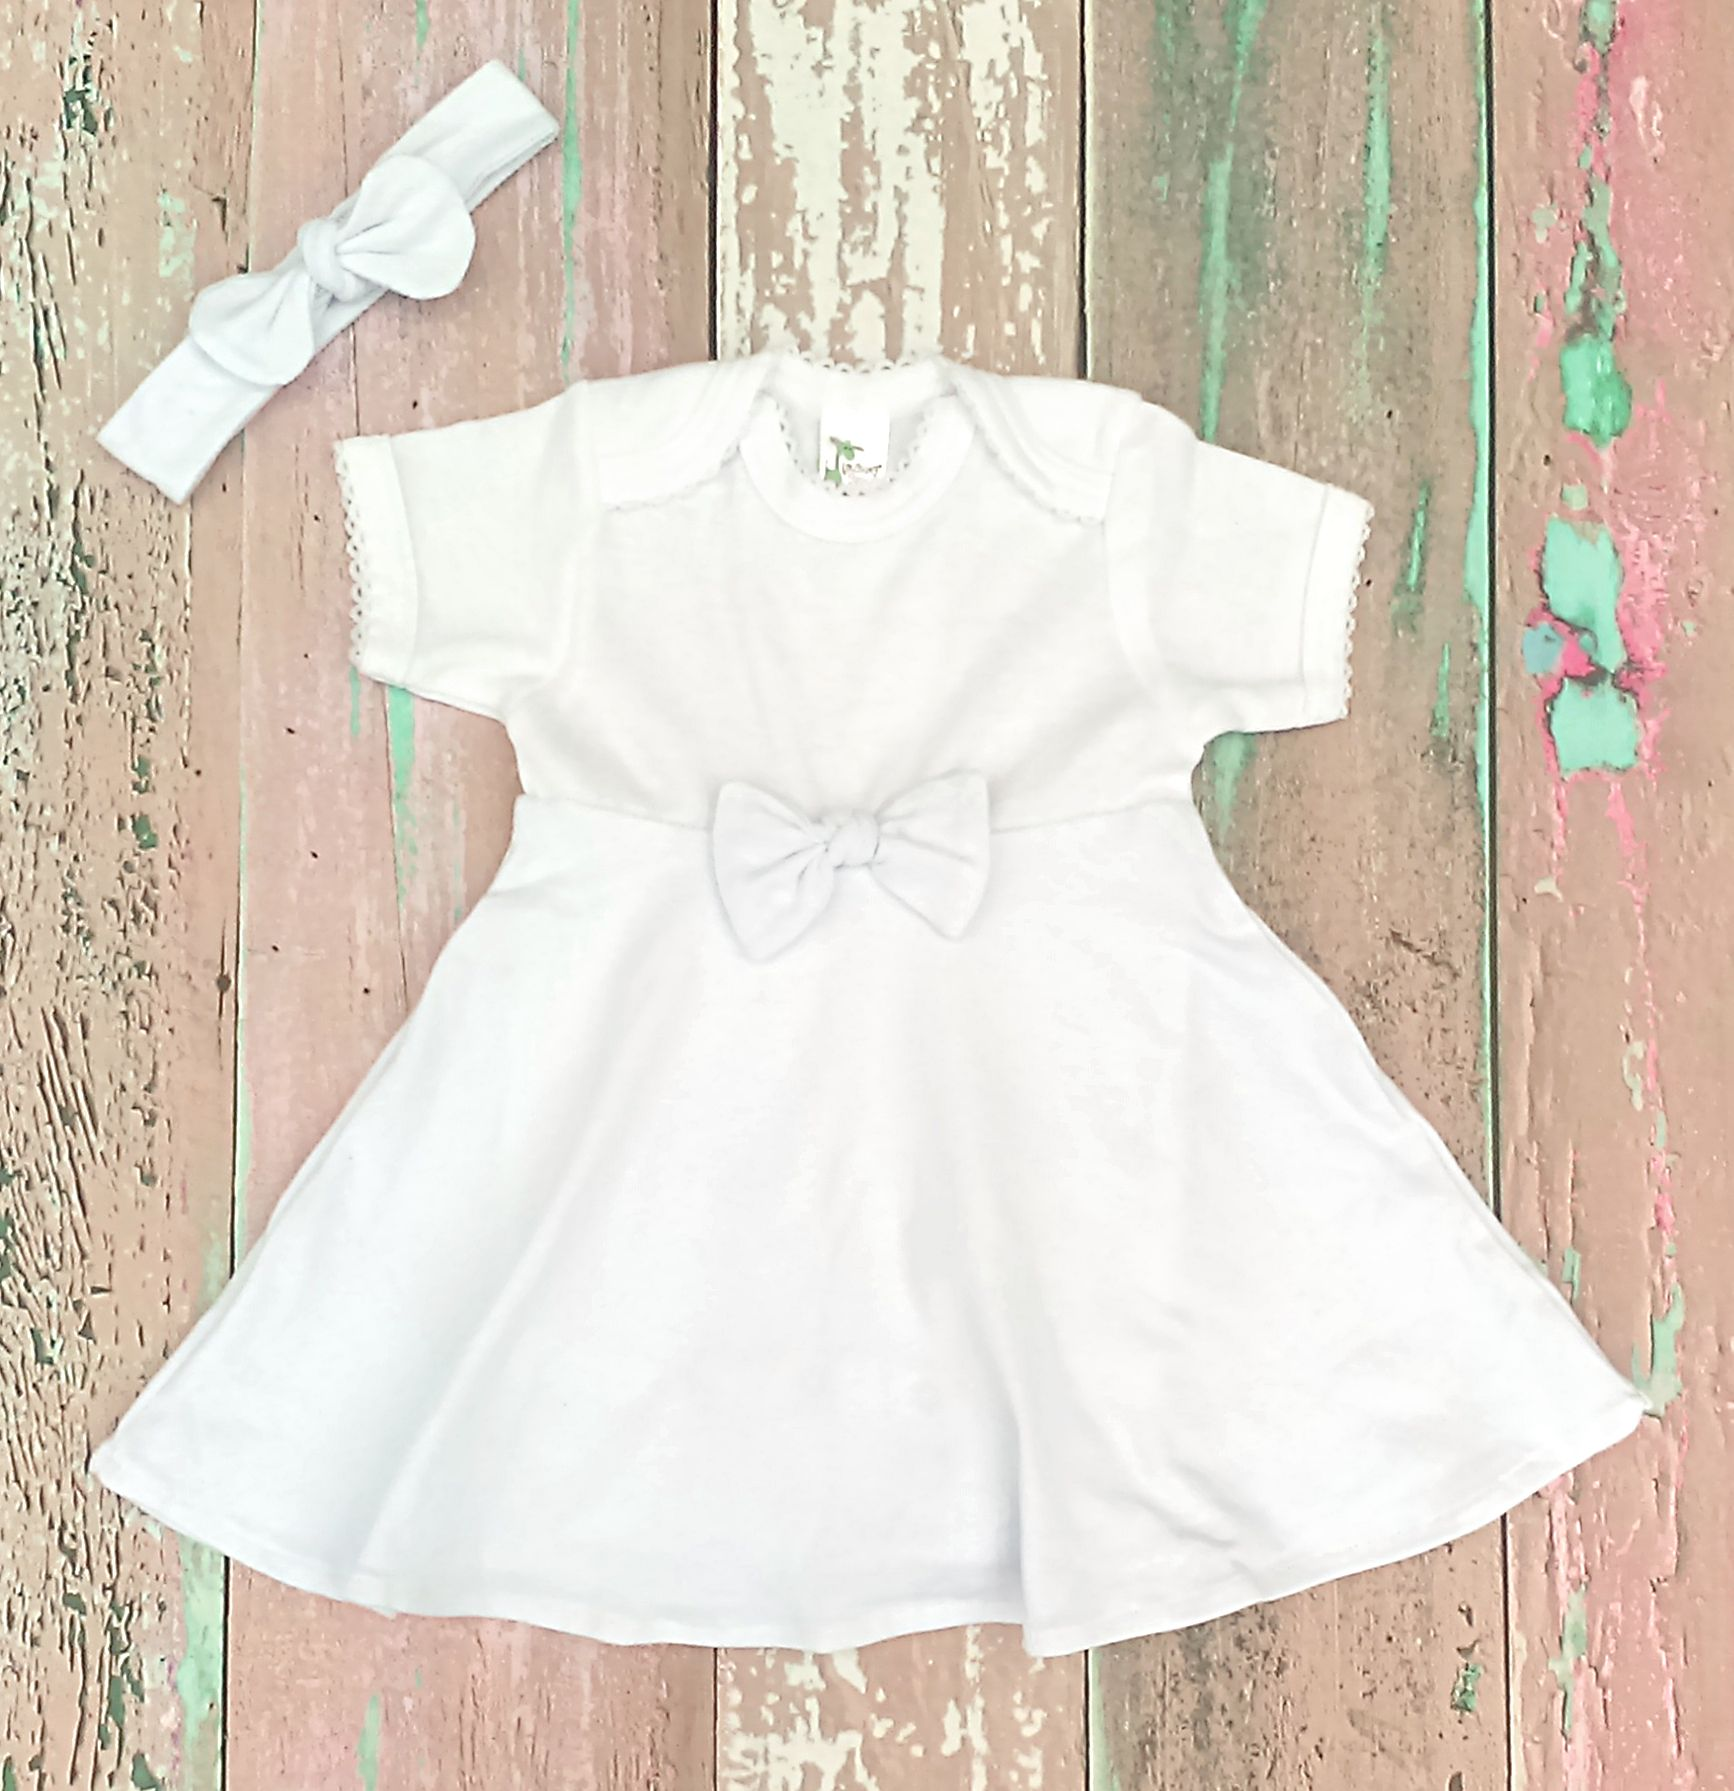 This white infant dress makes a minimalist and modern baby girl